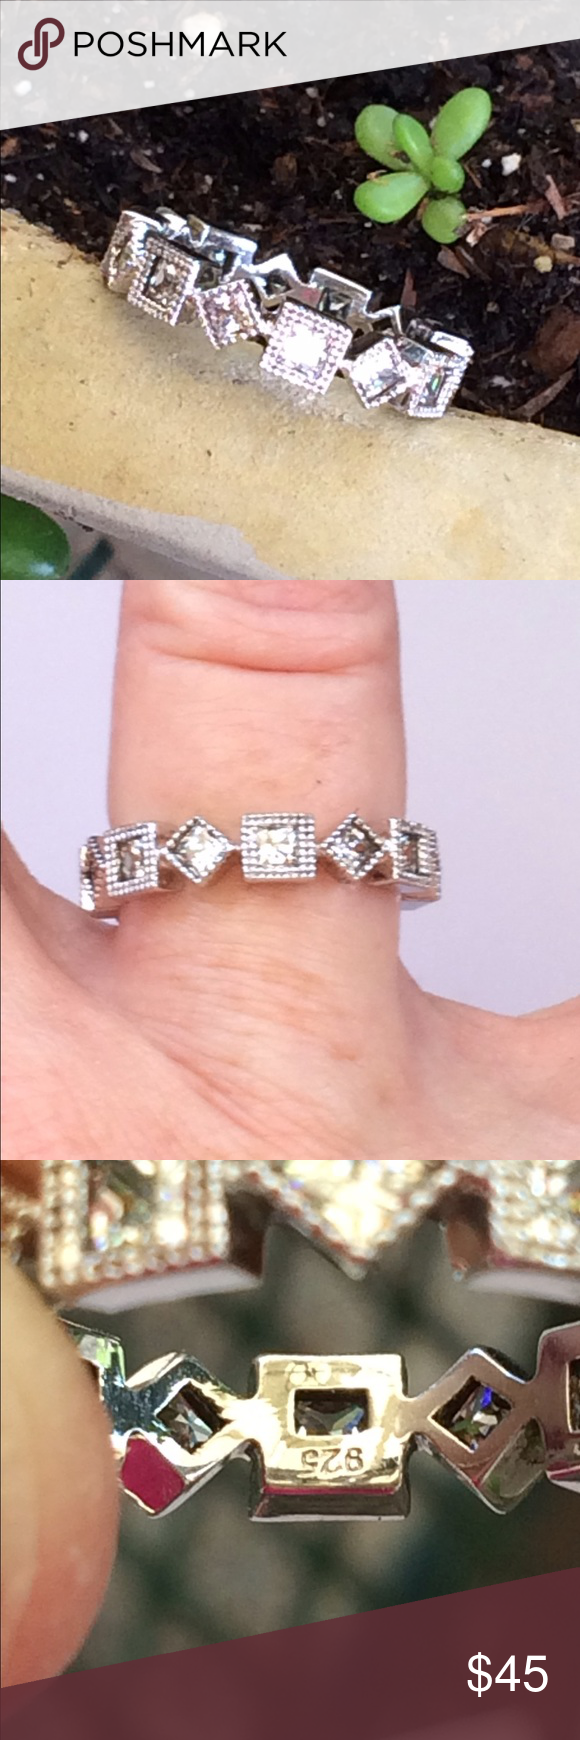 Sterling silver CZ eternity band | Pinterest | Eternity bands ...